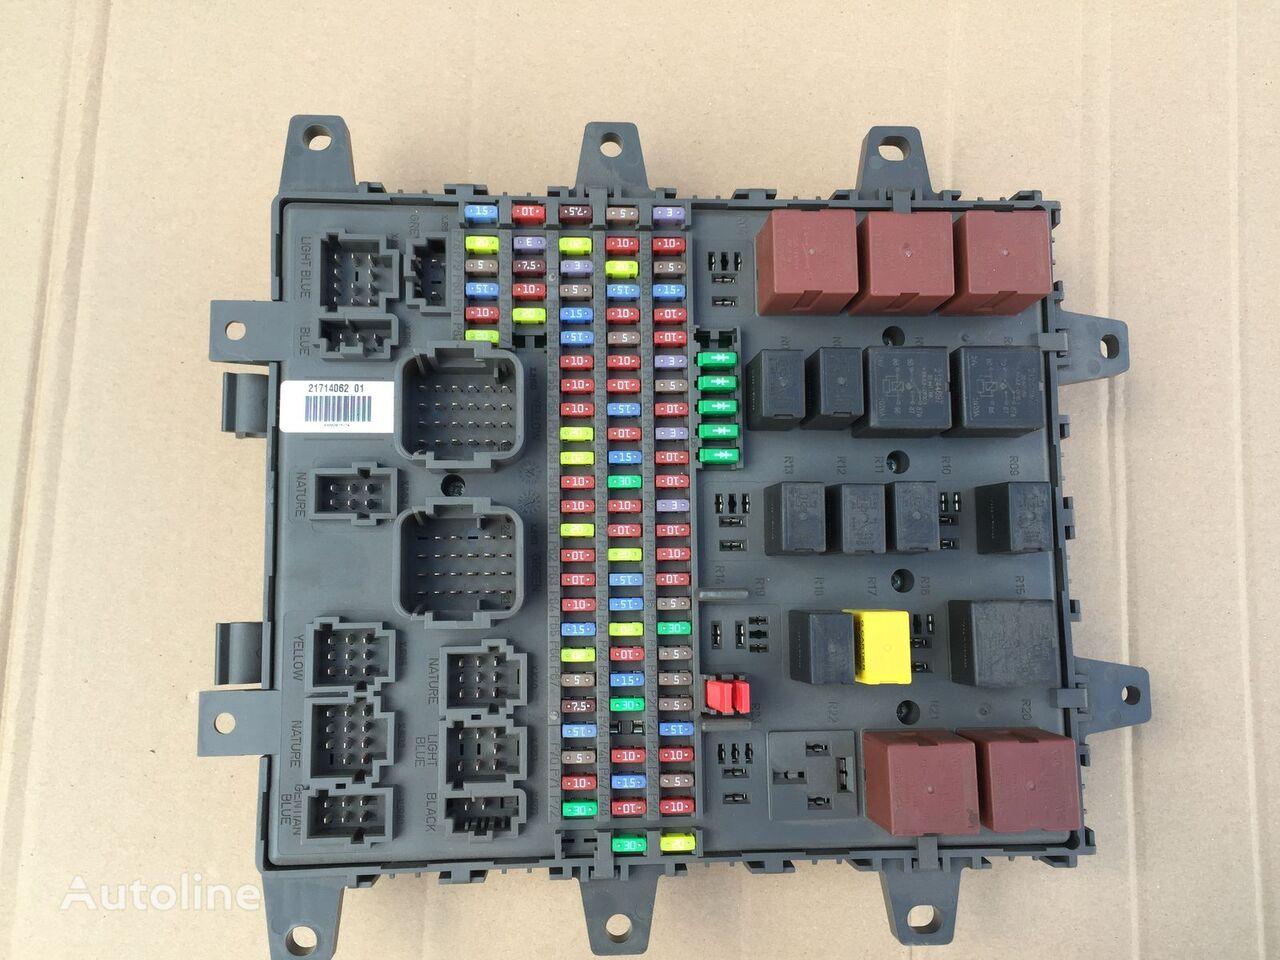 hight resolution of volvo fe fl euro6 orygina fuse block for volvo fe4 fl4 fh4 fm4 tractor unit